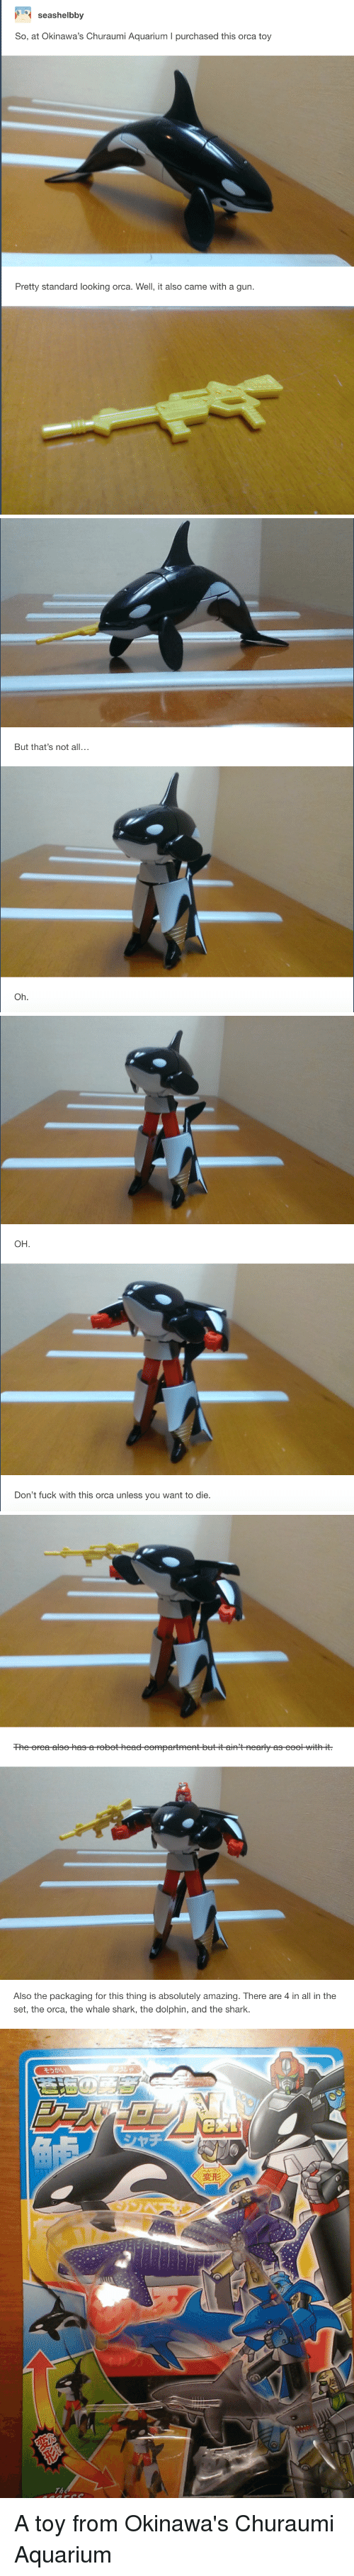 Orcas, Tumblr, and Shark: seashelbby  So, at Okinawa's Churaumi Aquarium l purchased this orca toy  Pretty standard looking orca. We  it also came with a gun   But that's not a  Oh   OH.  Don't fuck with this orca unless you want to die.   The re la asthebotheateompartmentbutitairitnear yetseooHrithit.   Also the packaging for this thing is absolutely amazing. There are 4 in all in the  set, the orca, the whale shark, the dolphin, and the shark.  ext A toy from Okinawa's Churaumi Aquarium